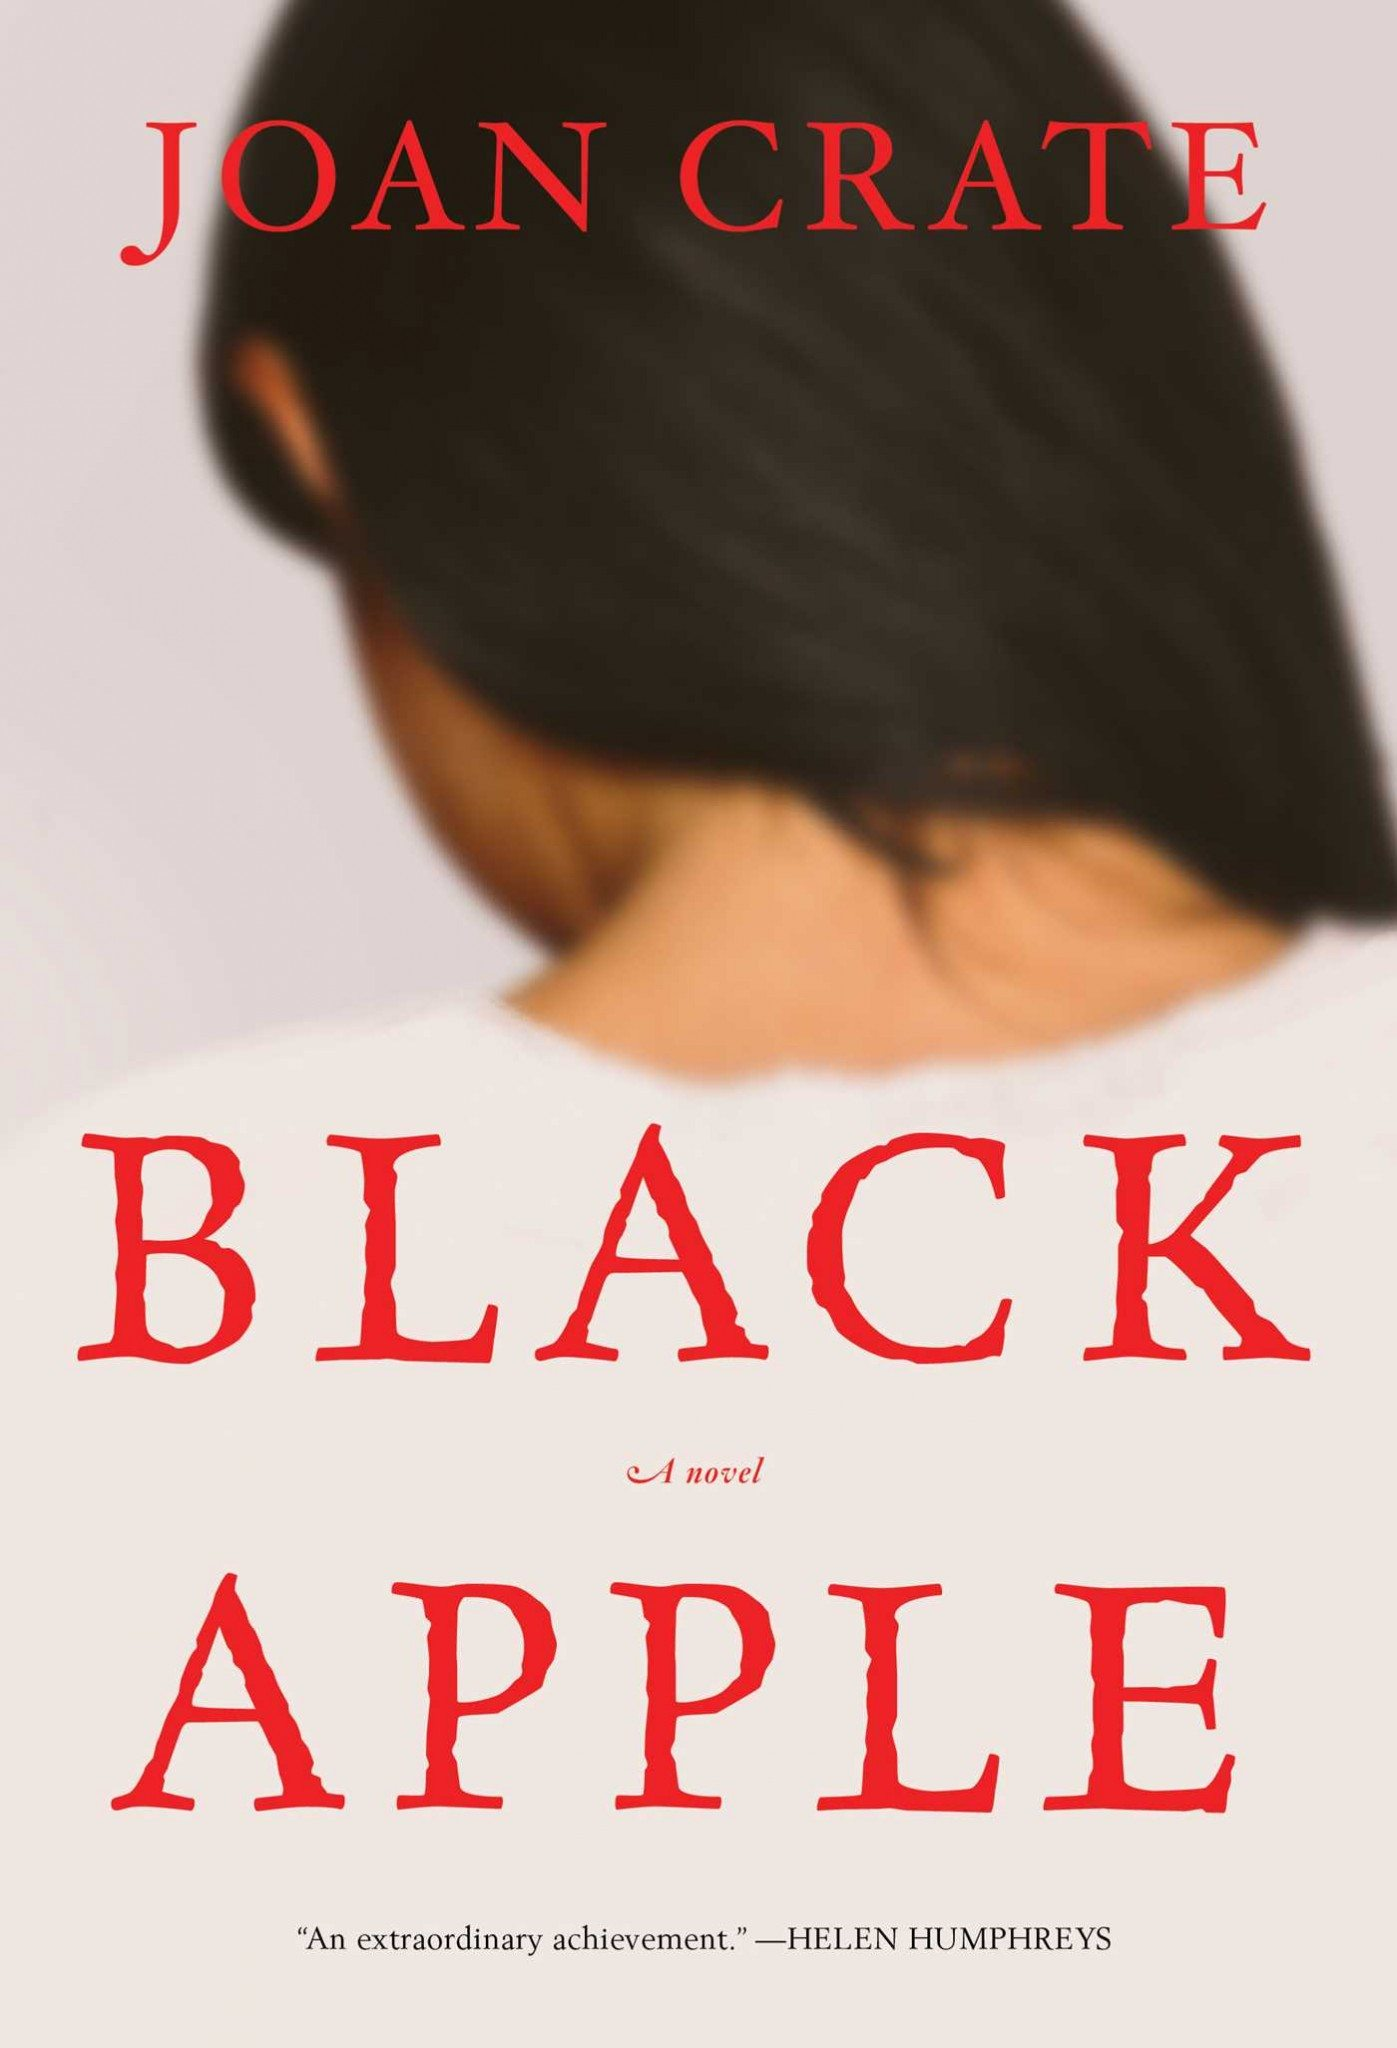 Black Apple reviews March